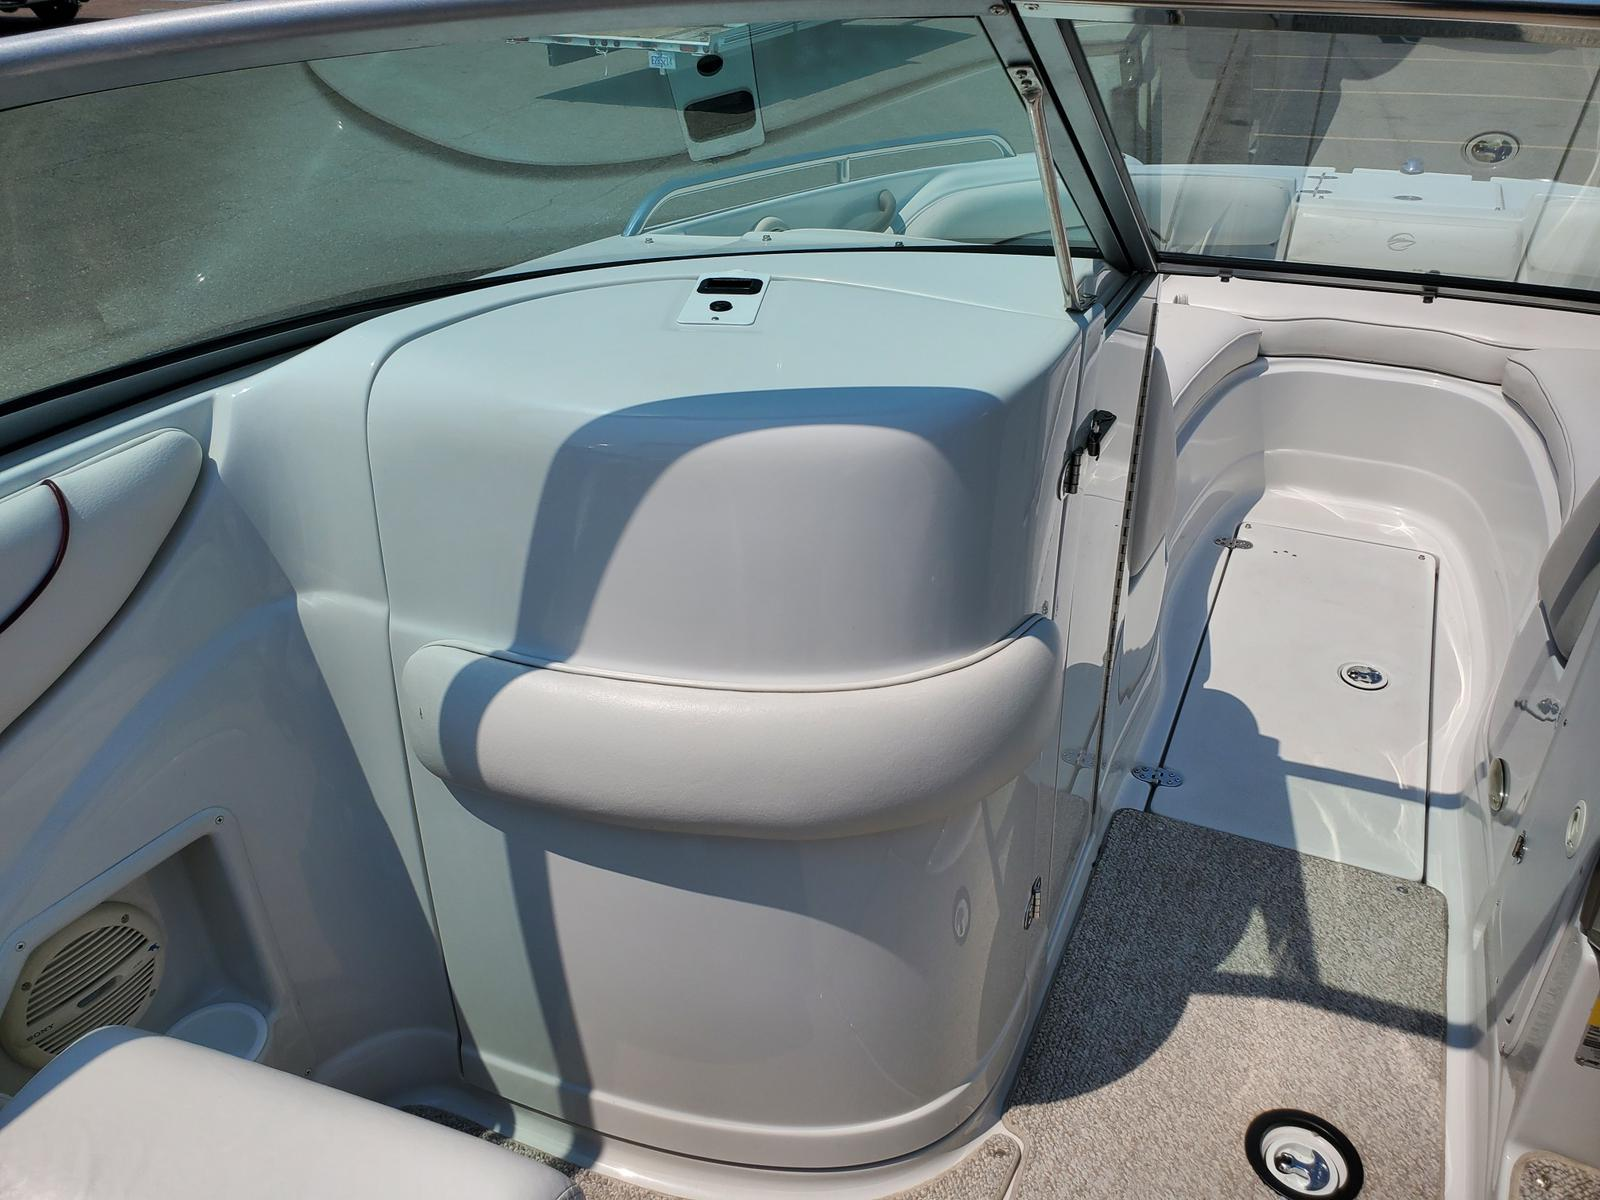 2004 Crownline boat for sale, model of the boat is Deck Boat 240 EX & Image # 8 of 12